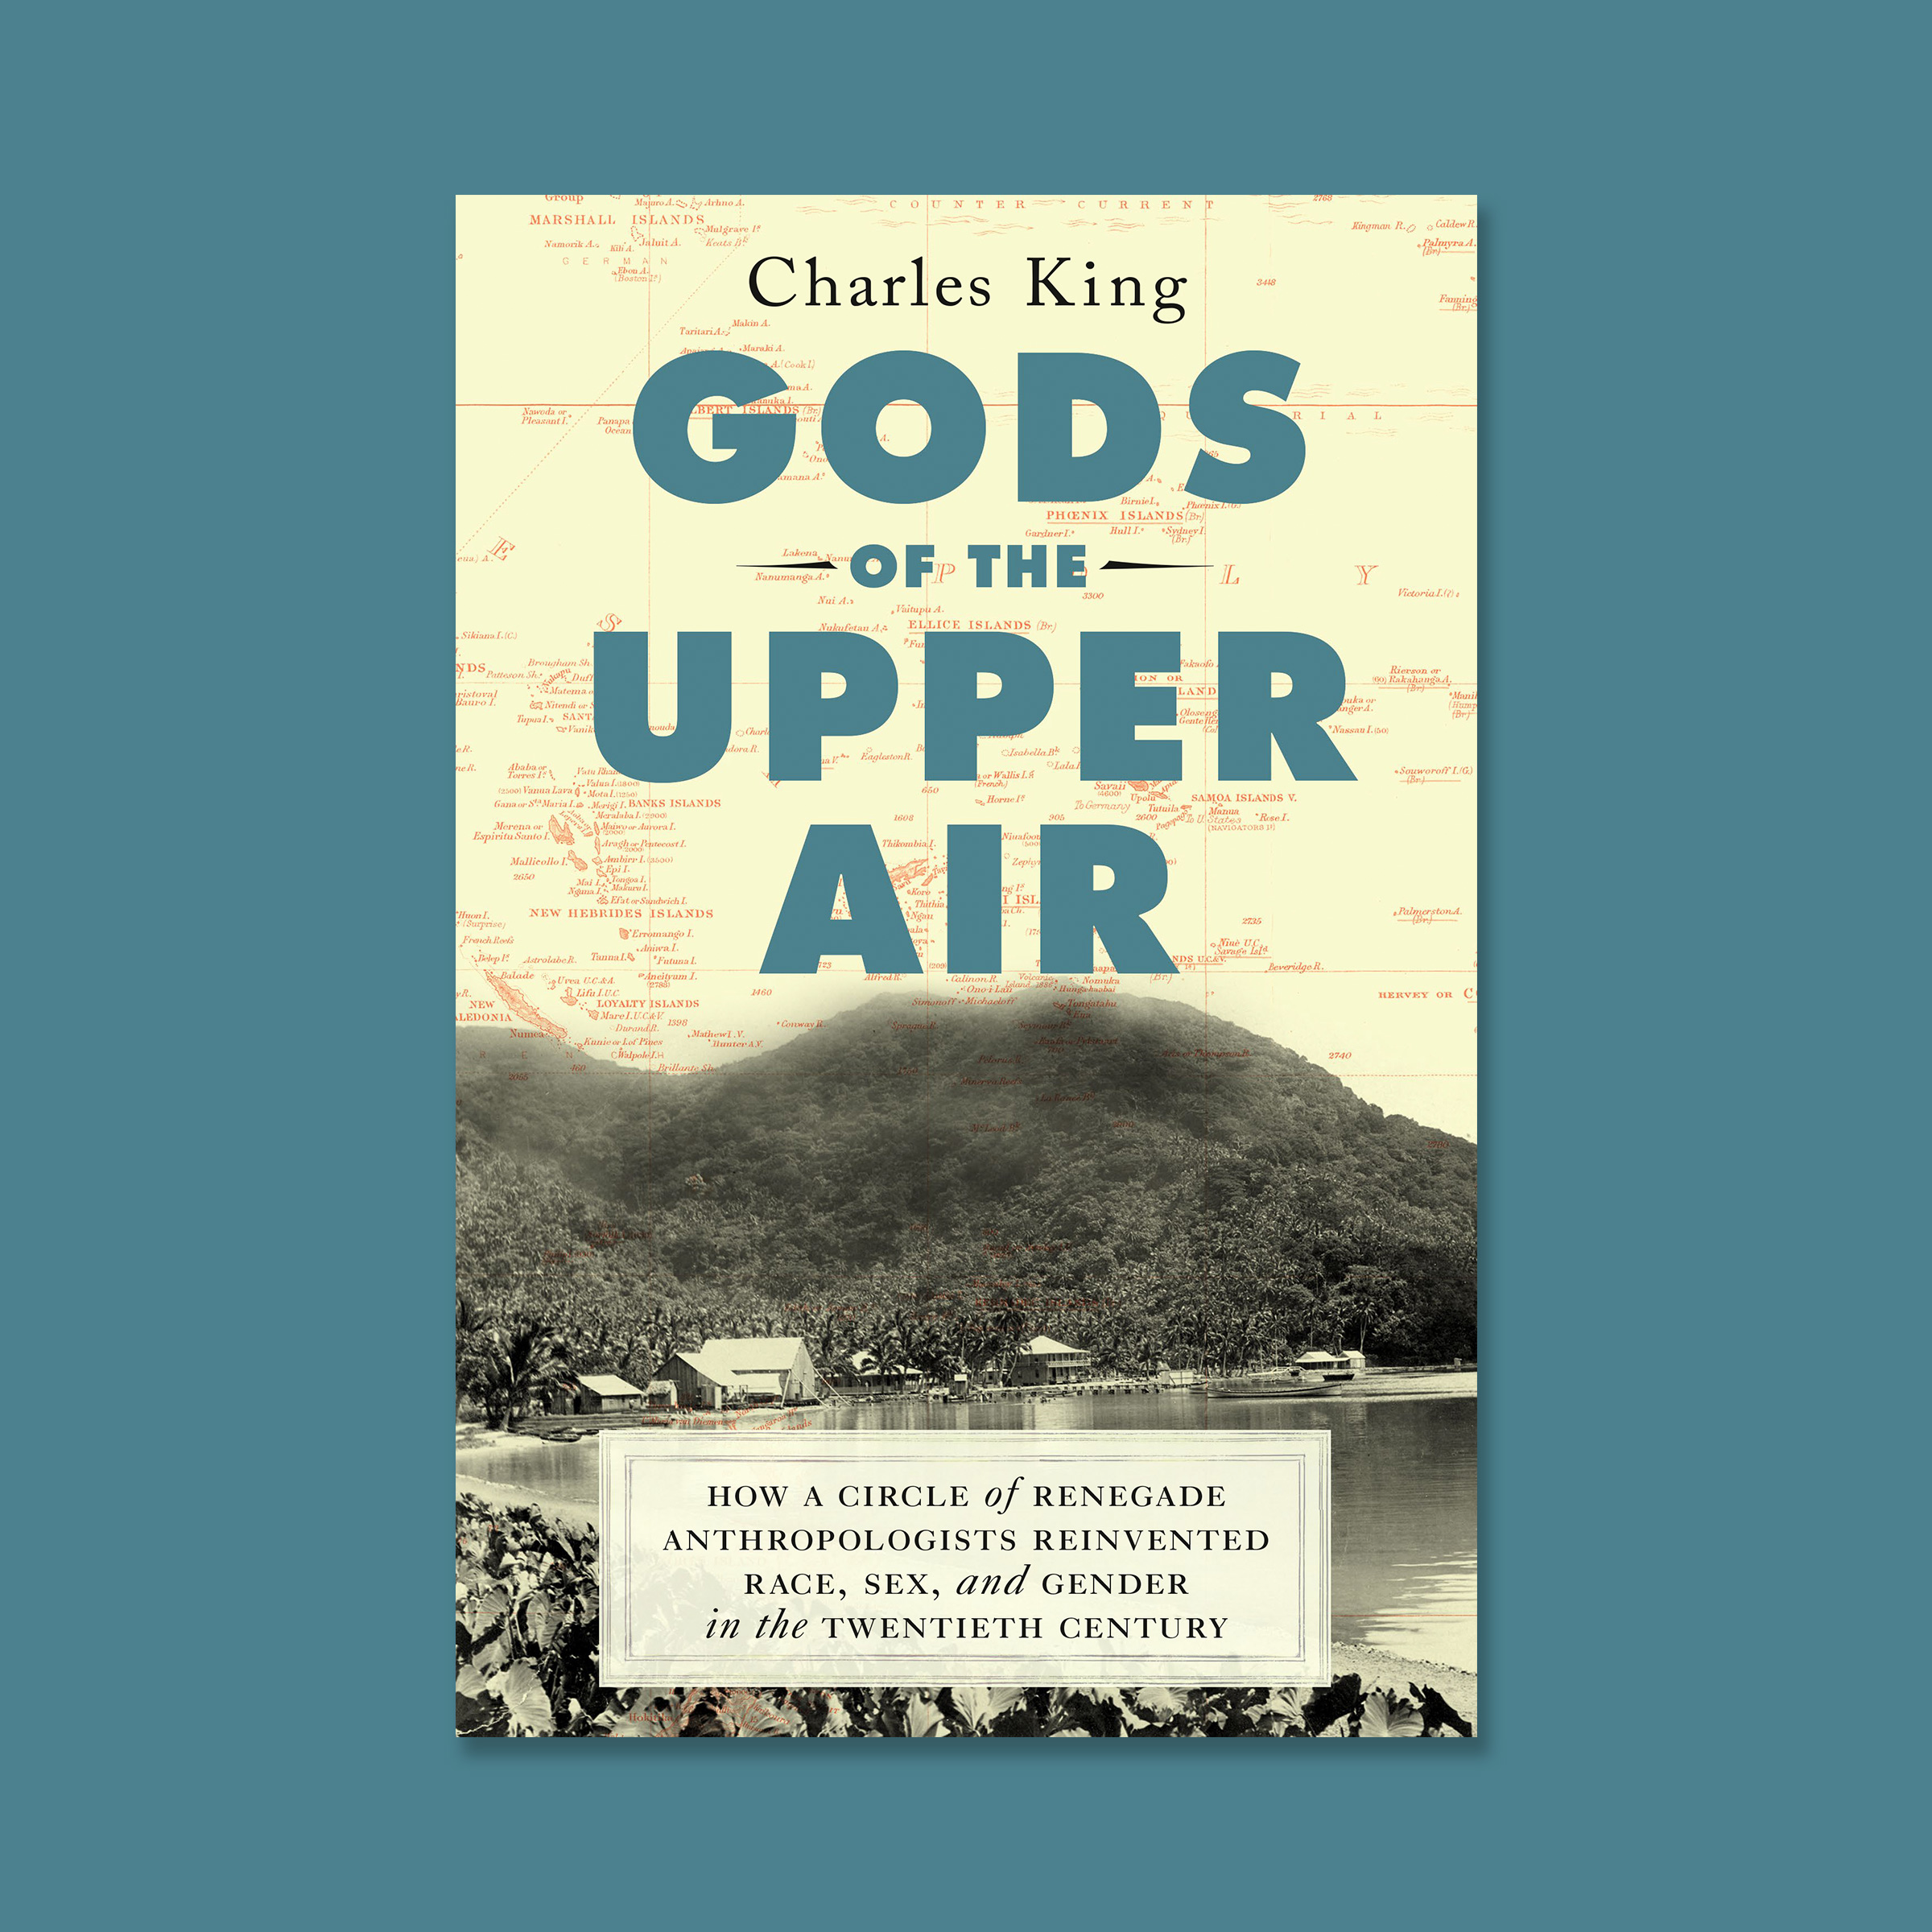 King, a professor at Georgetown, is the author of Gods of the Upper Air: How a Circle of Renegade Anthropologists Reinvented Race, Sex, and Gender in the Twentieth Century.